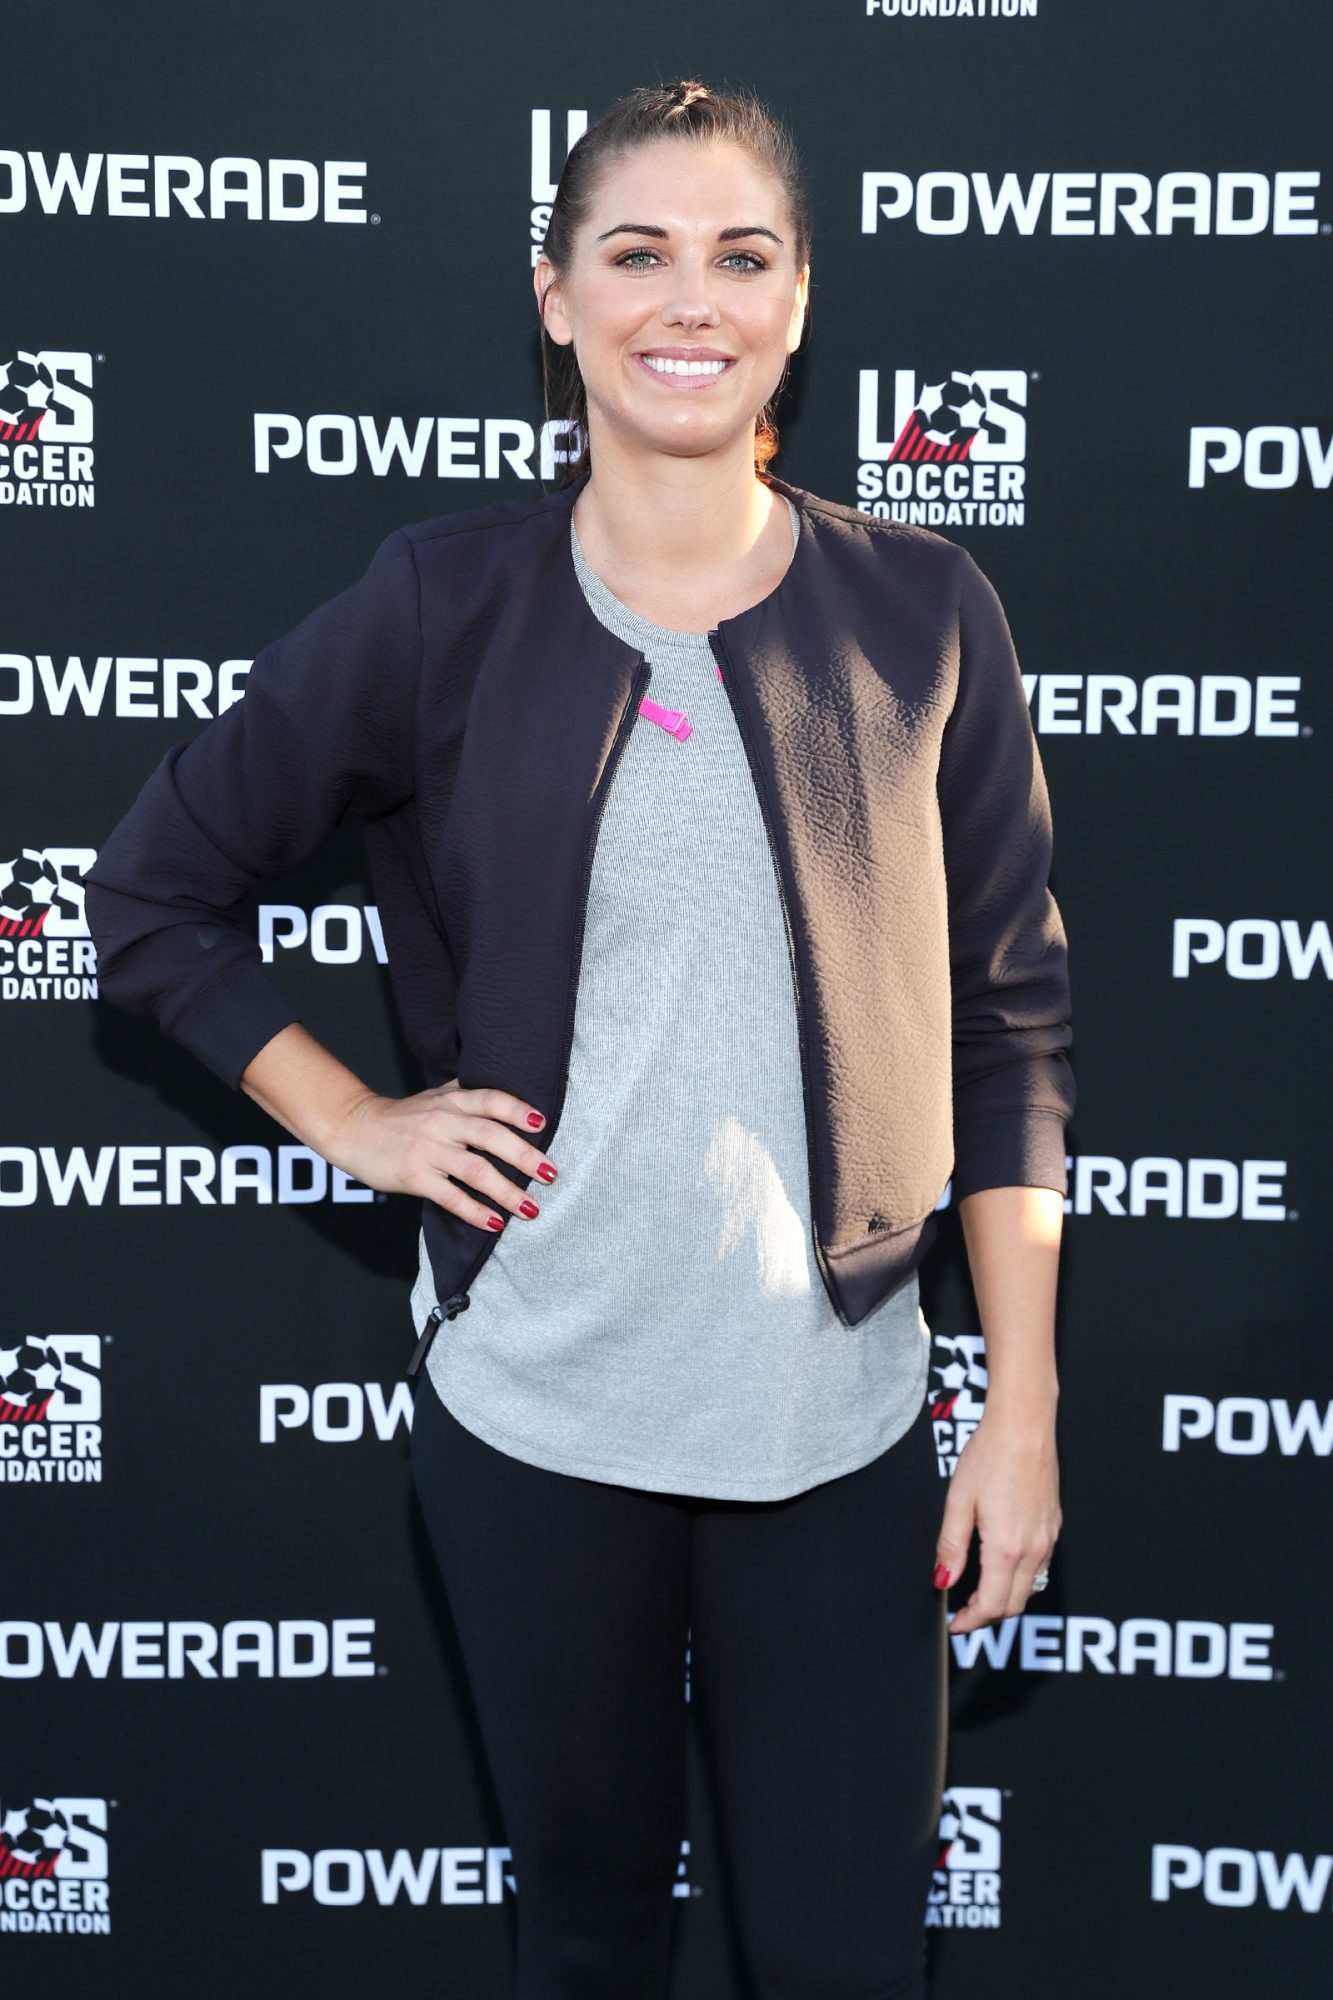 Alex Morgan attends the unveiling of the POWERADE and U.S. Soccer Foundation Power Pitch on November 05, 2019 in Gardena, California